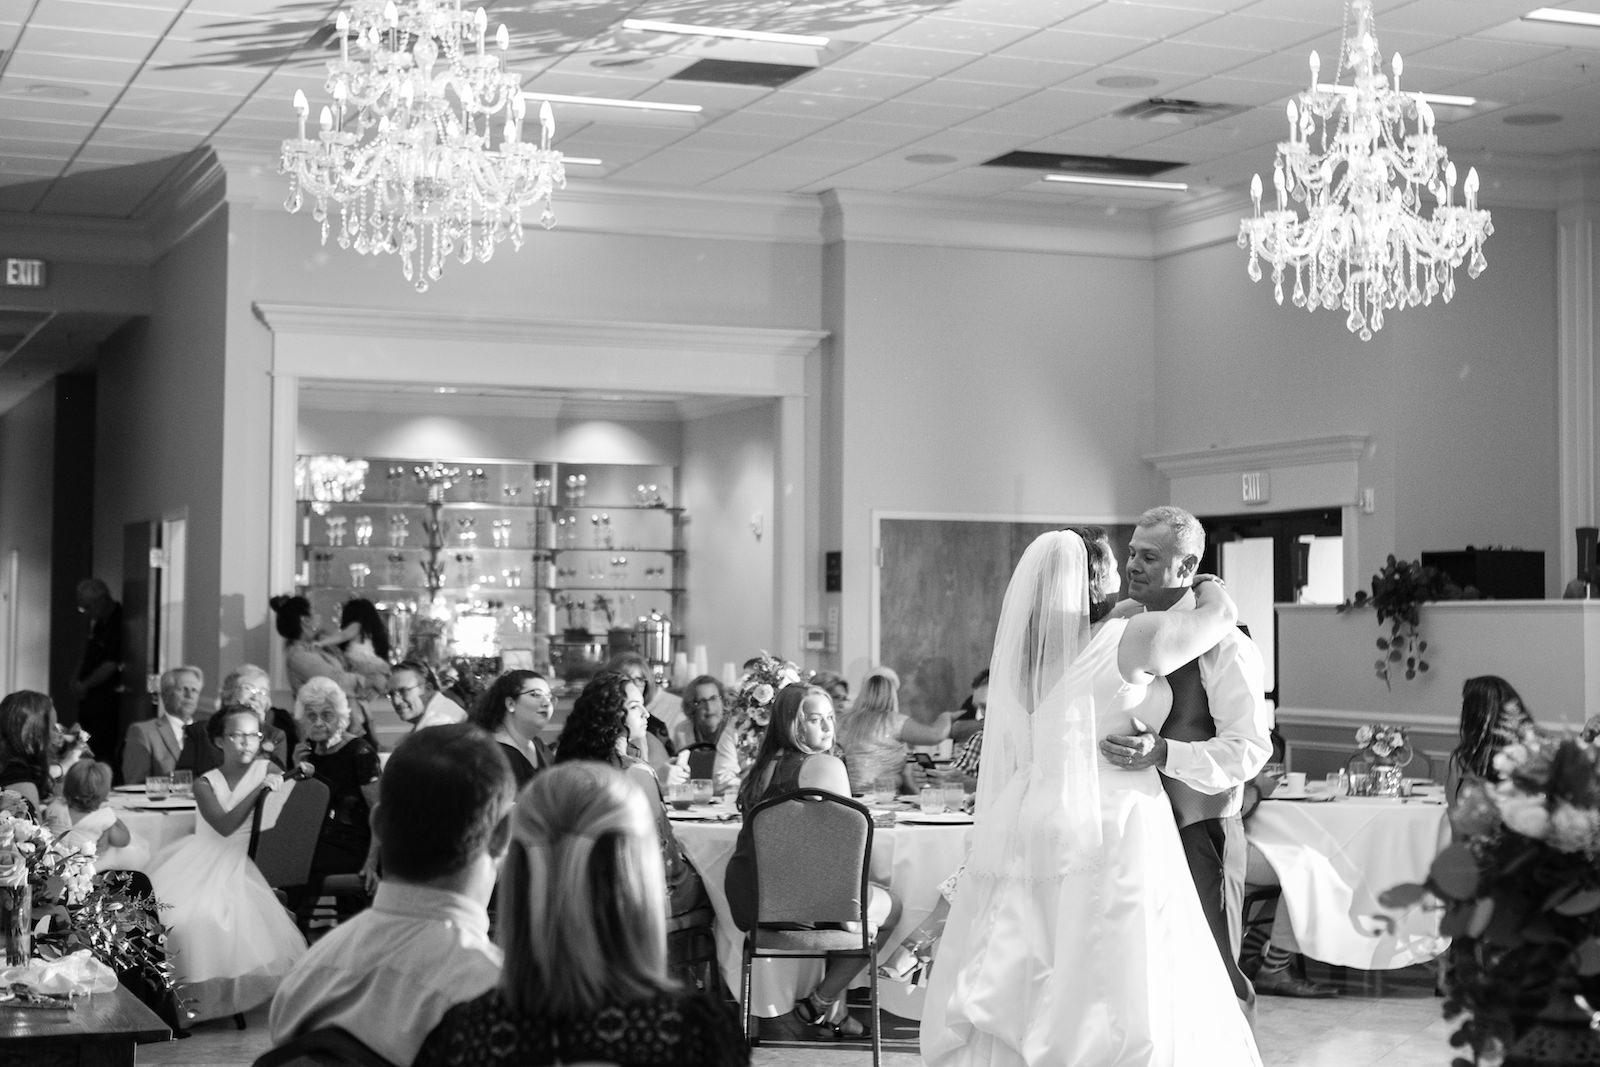 Black and White Bride and Groom First Dance Wedding Reception Portrait | Wedding Photographer Carrie Wildes Photography | Wedding Dress Truly Forever Bridal | Pinellas Park Wedding Venue Shahnasarian Hall